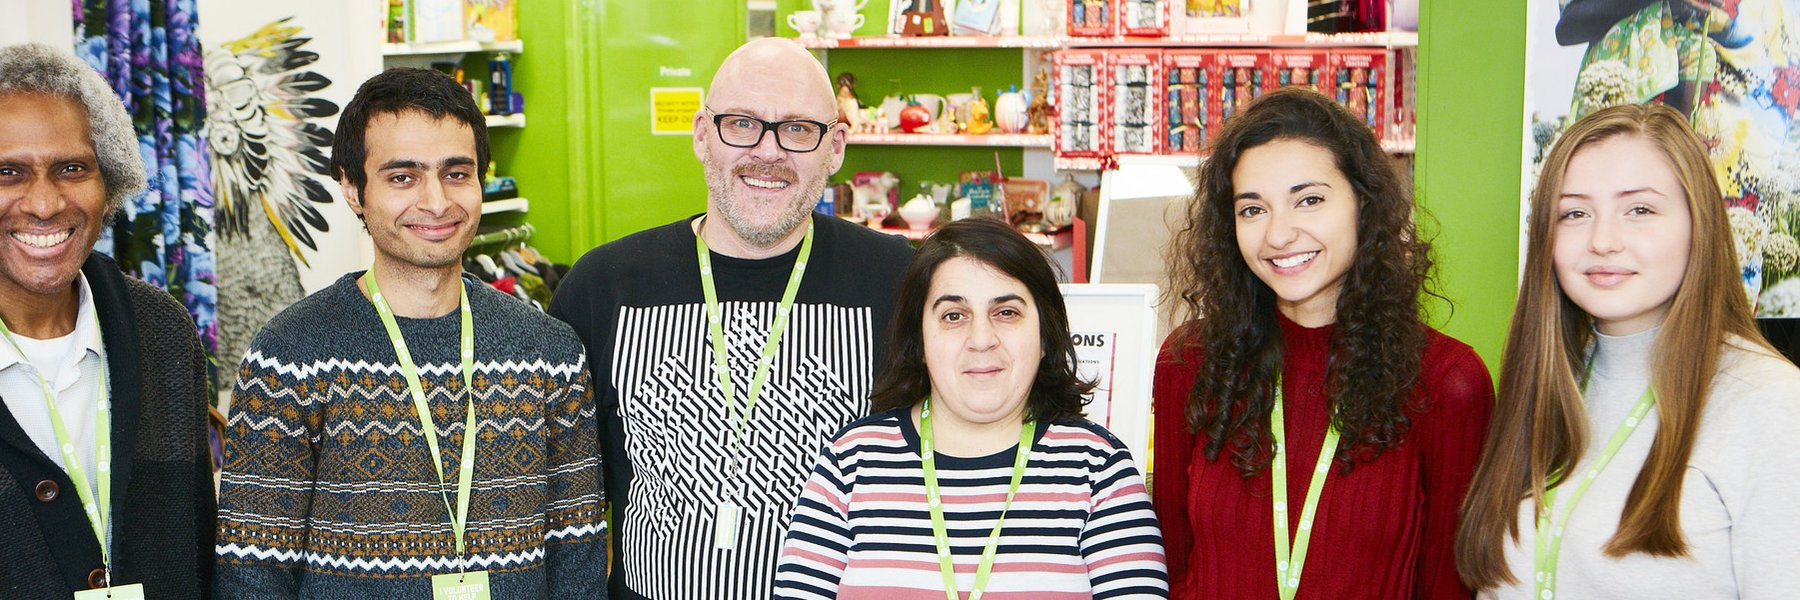 Volunteers and shop manager at Bethnal Green Oxfam shop